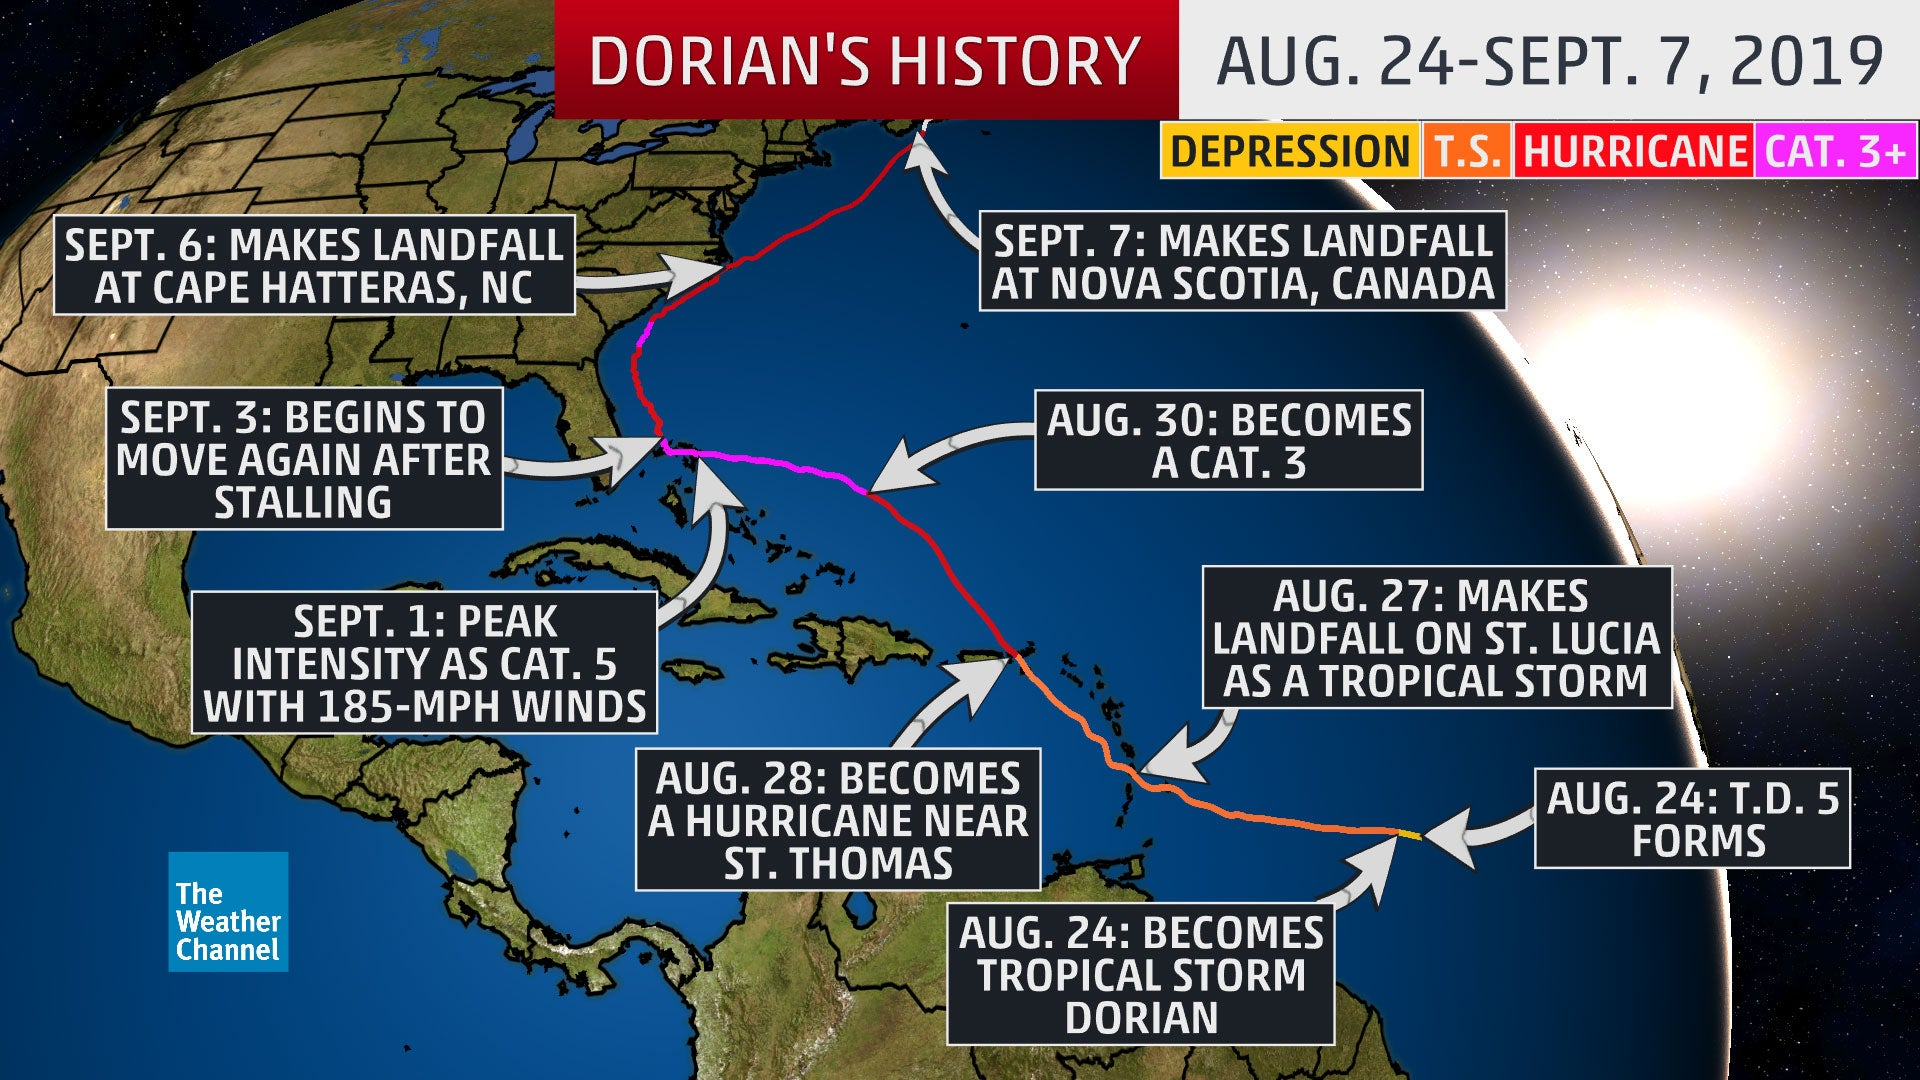 Hurricane Dorian Ravaged The Bahamas And Struck The